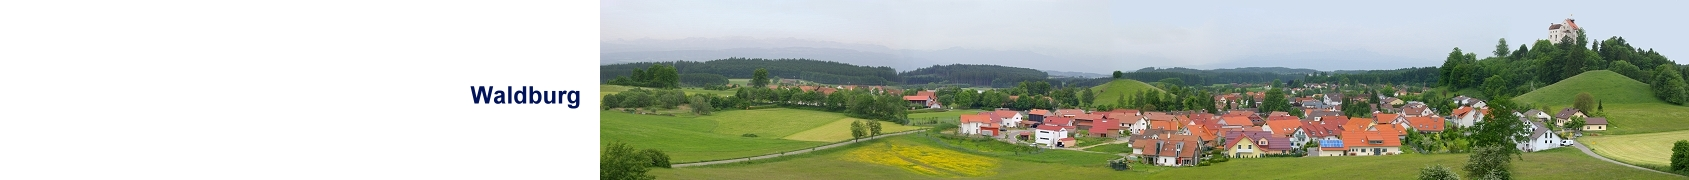 waldburg_pano